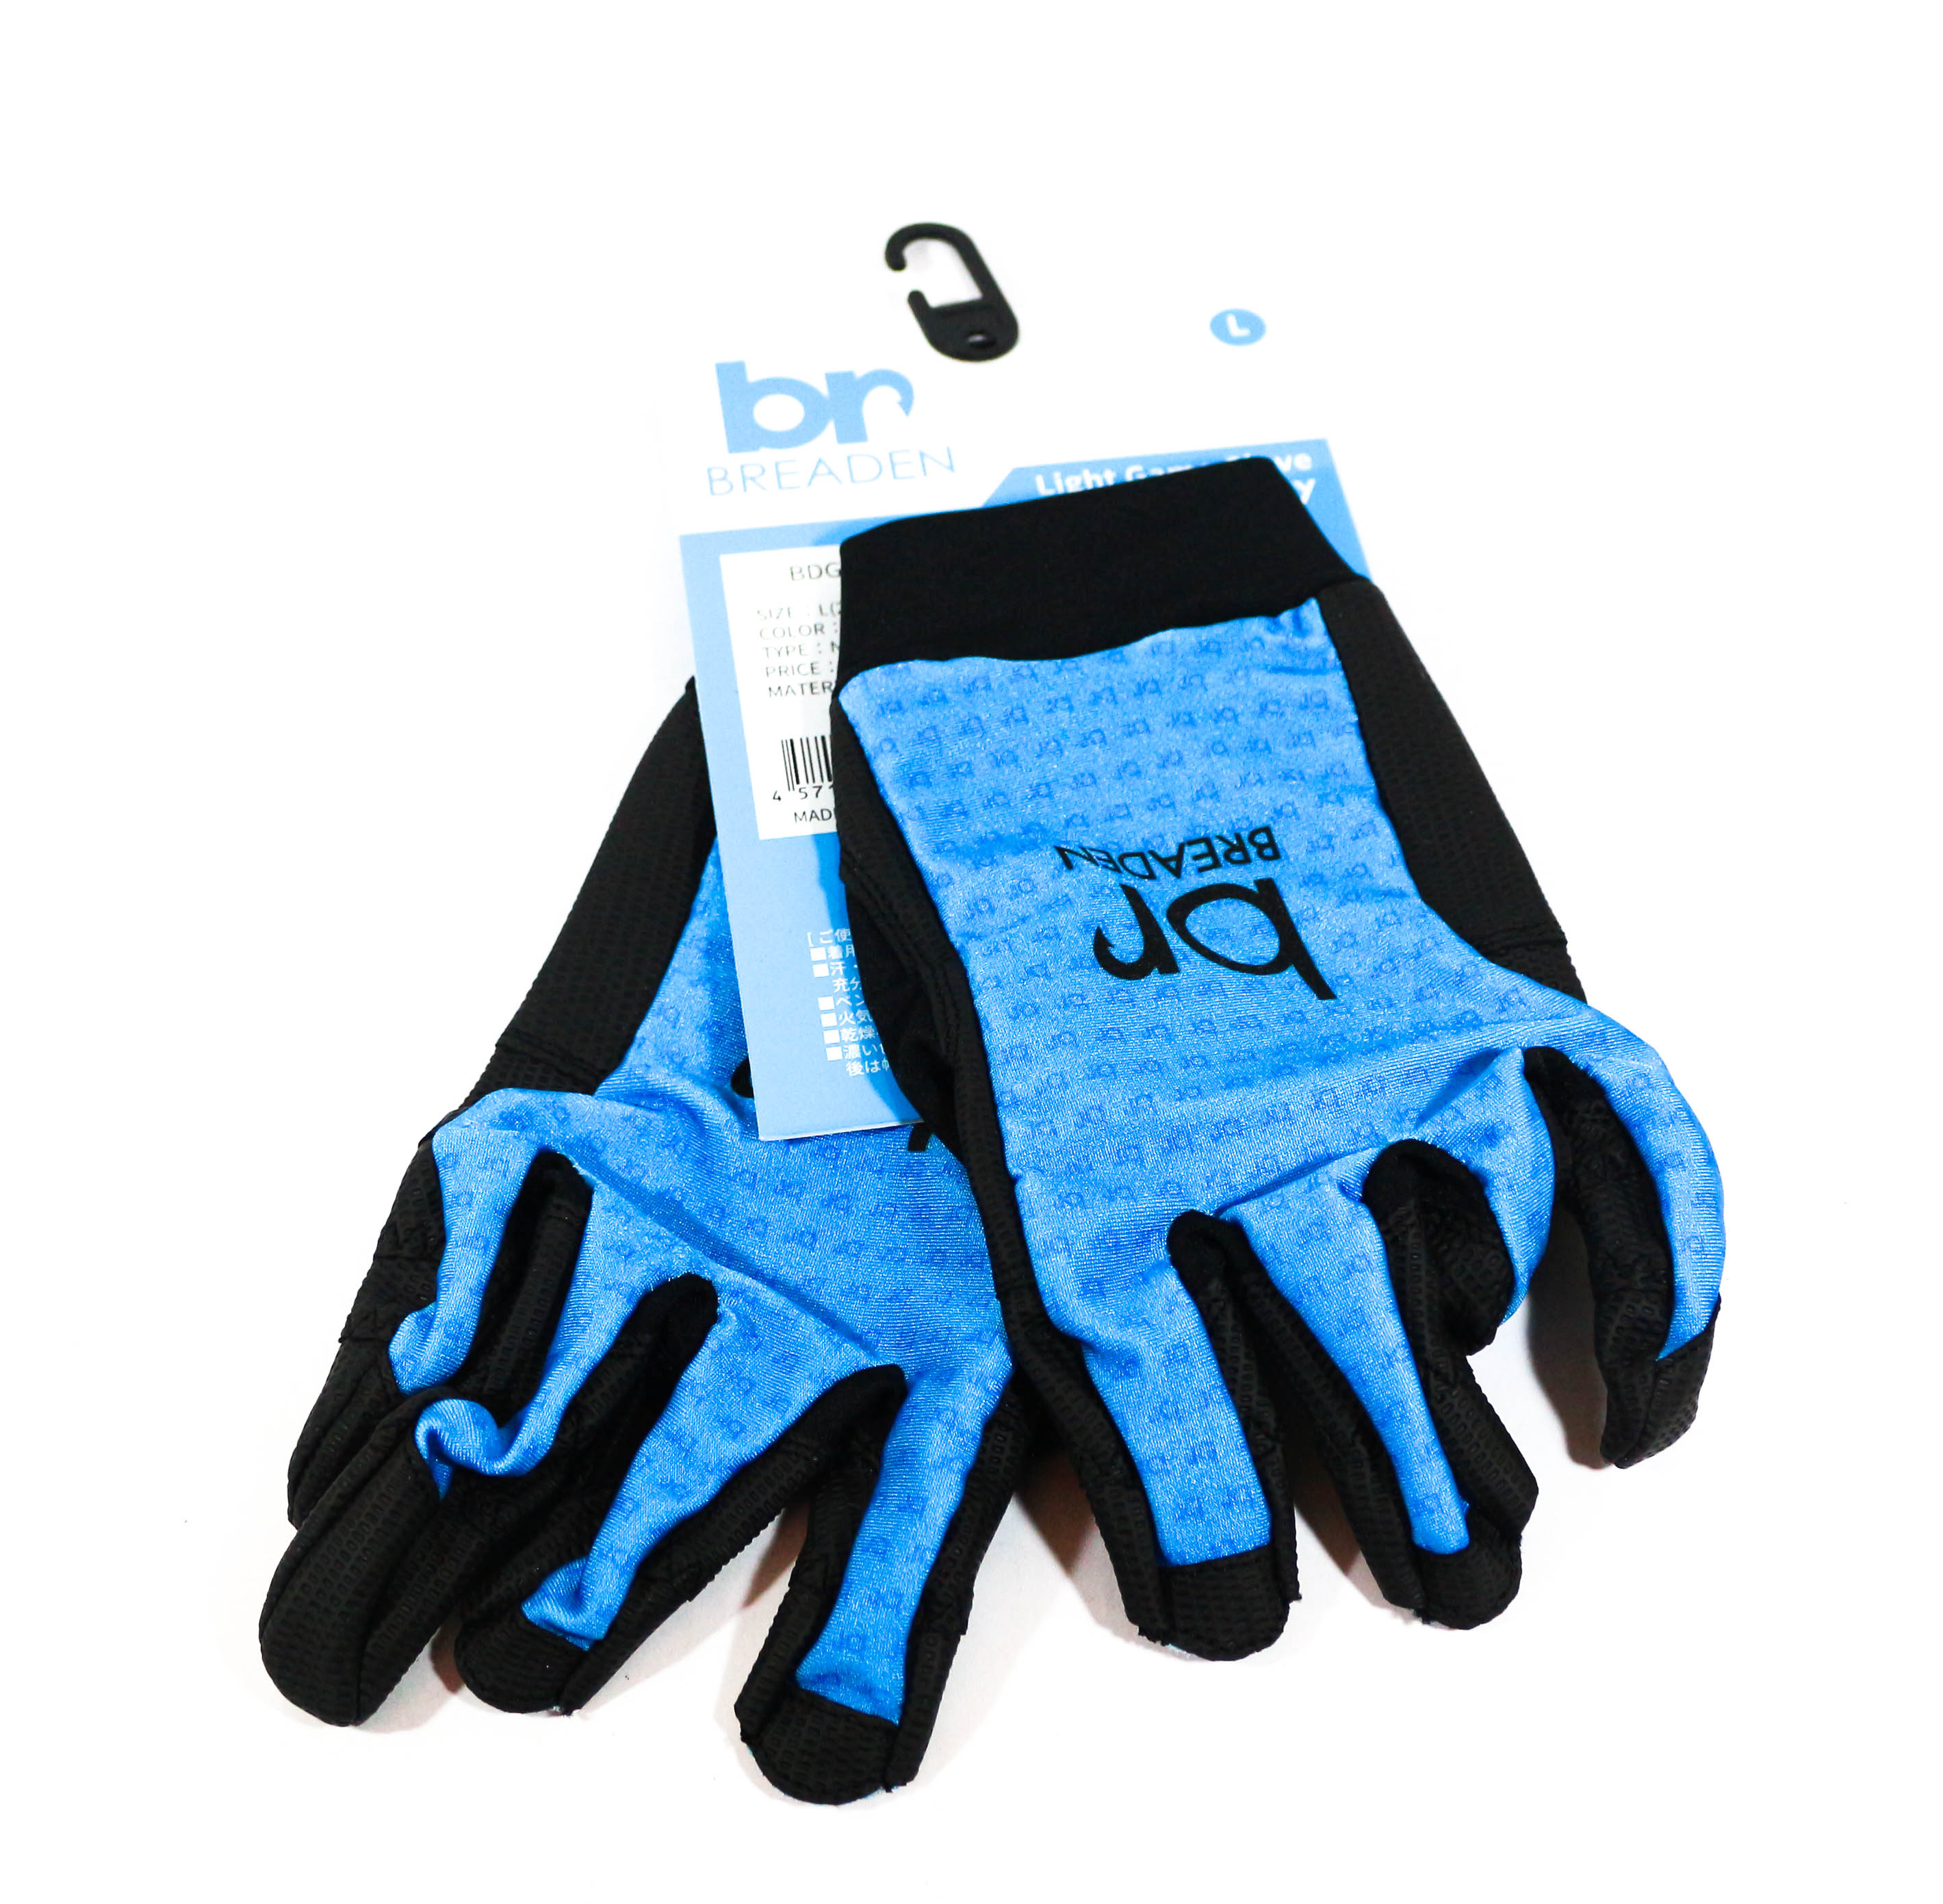 Breaden Gloves Light Game Naked 3 Evology Size L Blue (6303)